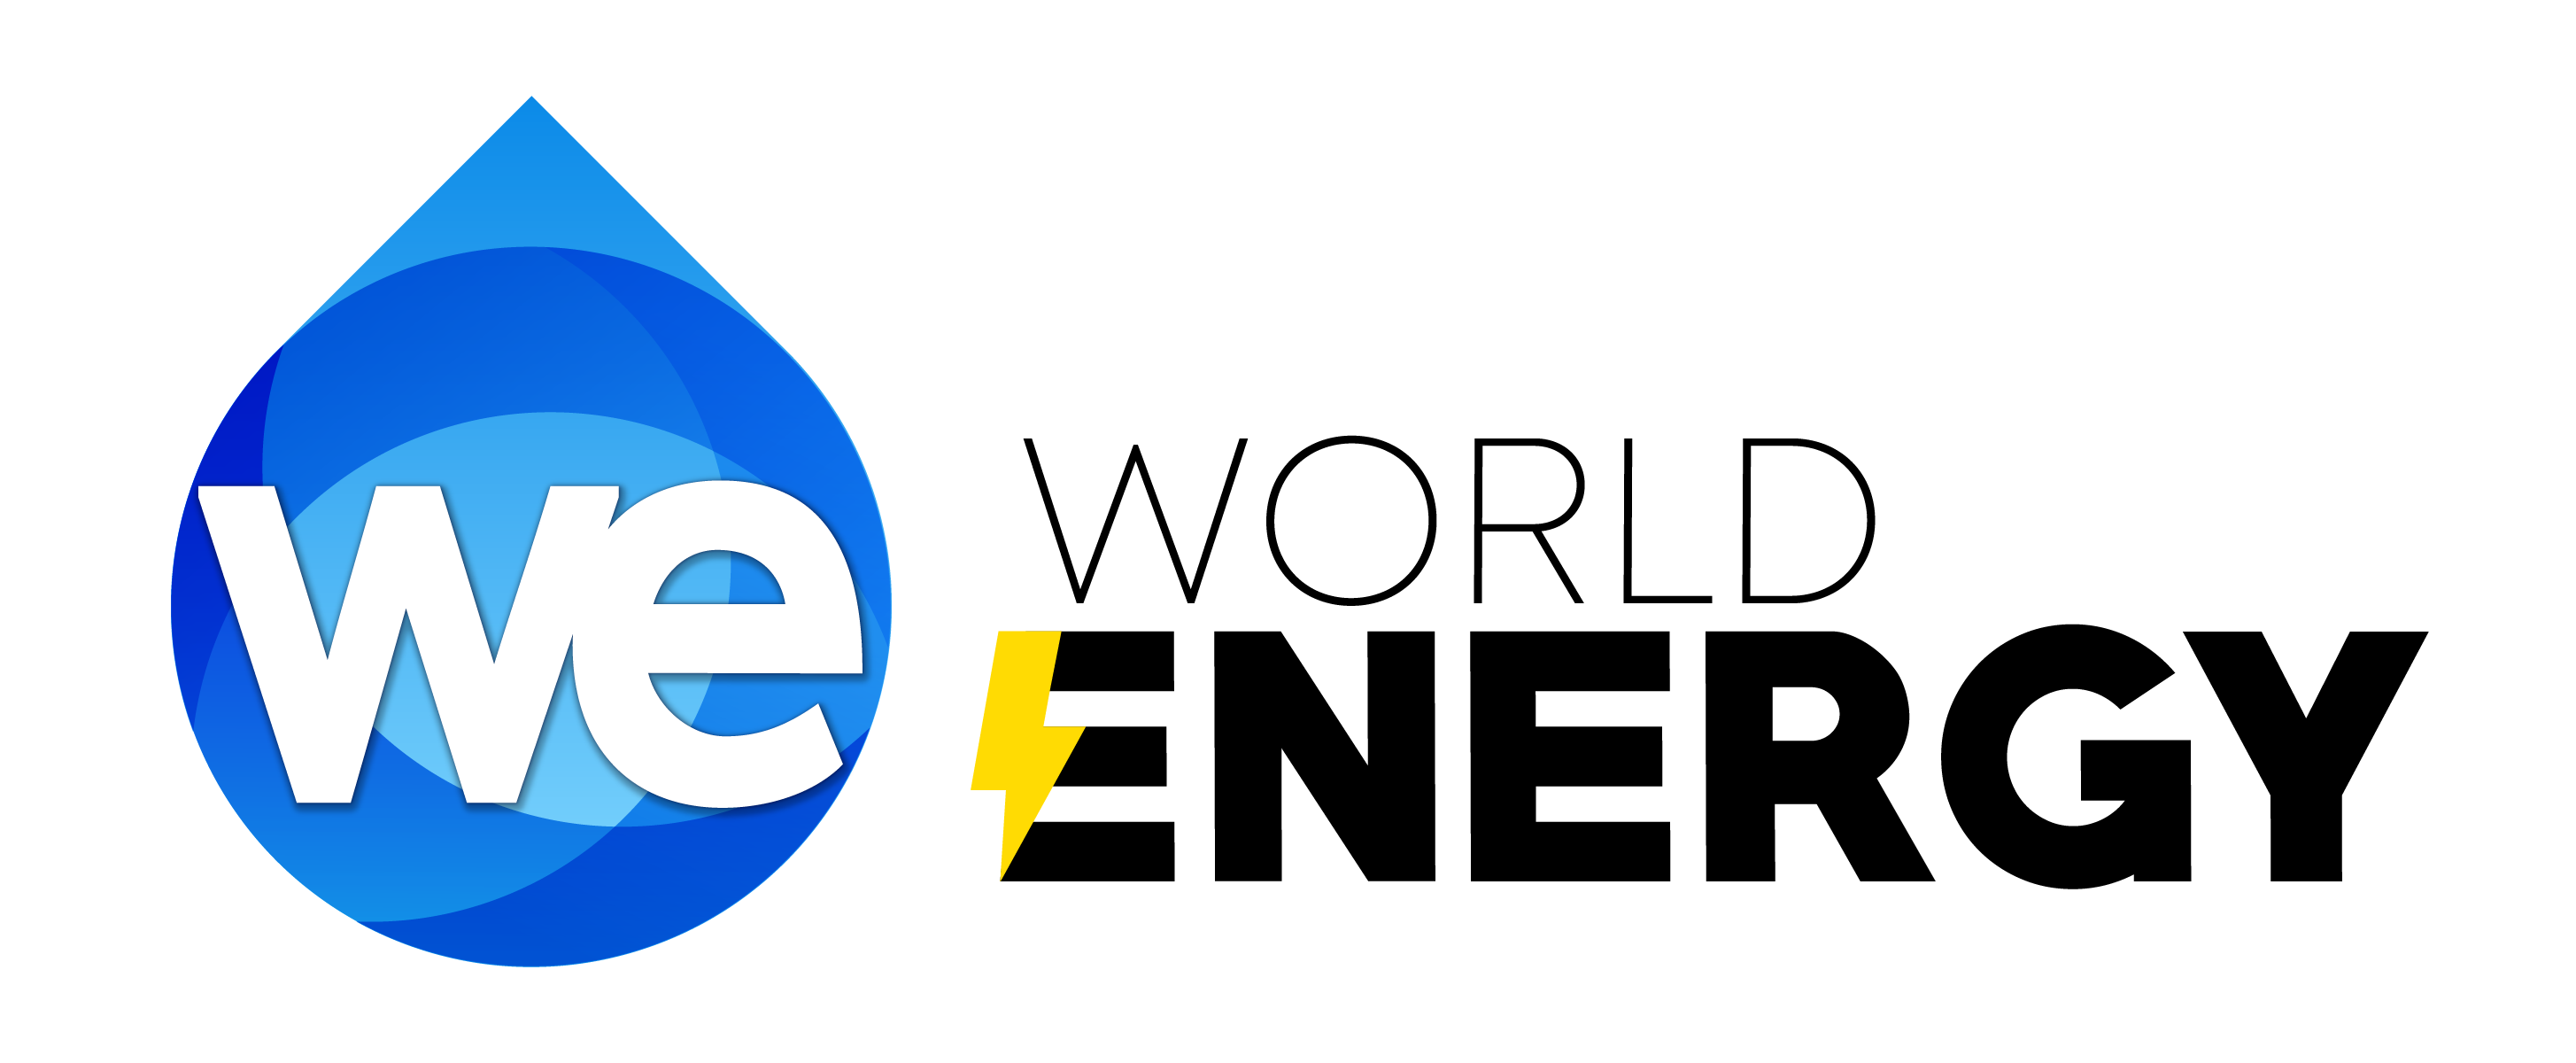 WE WORLD ENERGY